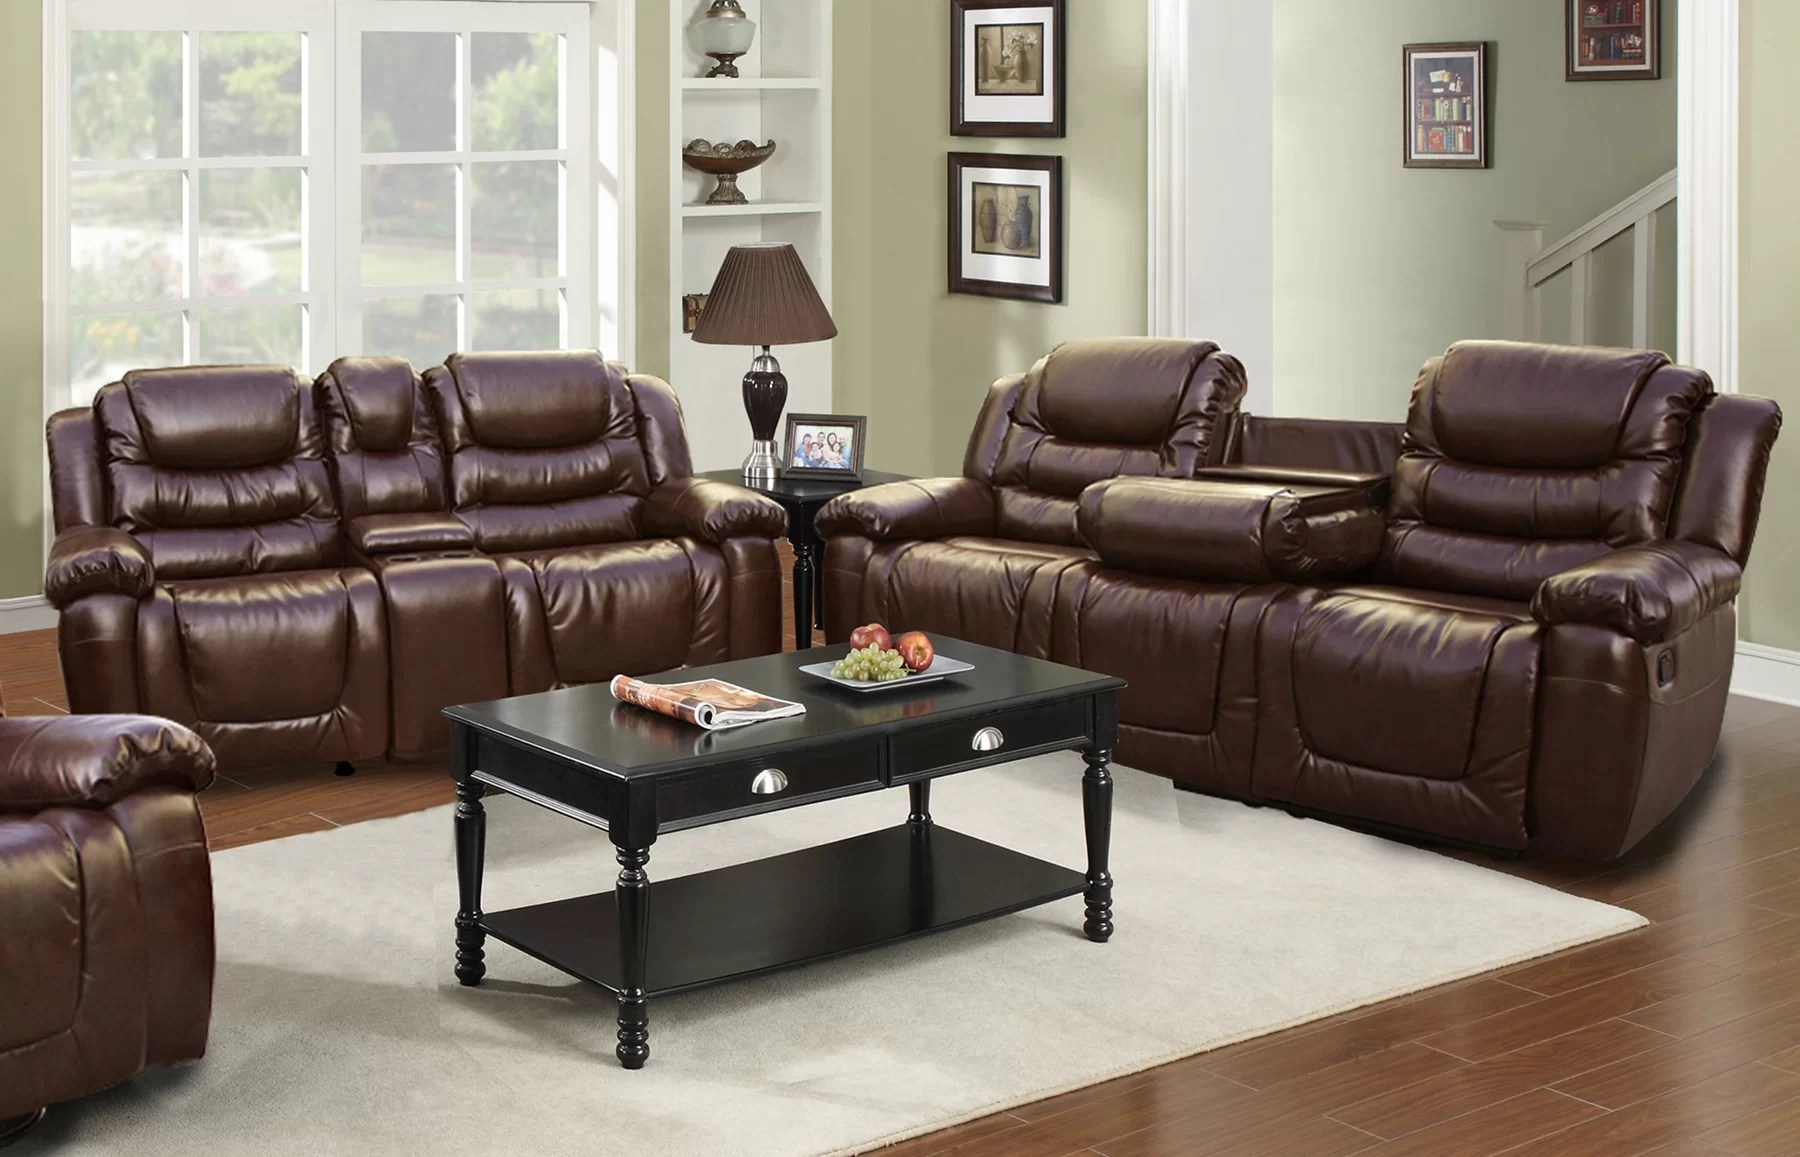 condo sized sectional sofa ottawa couch settee difference 2 piece bonded leather reclining living room